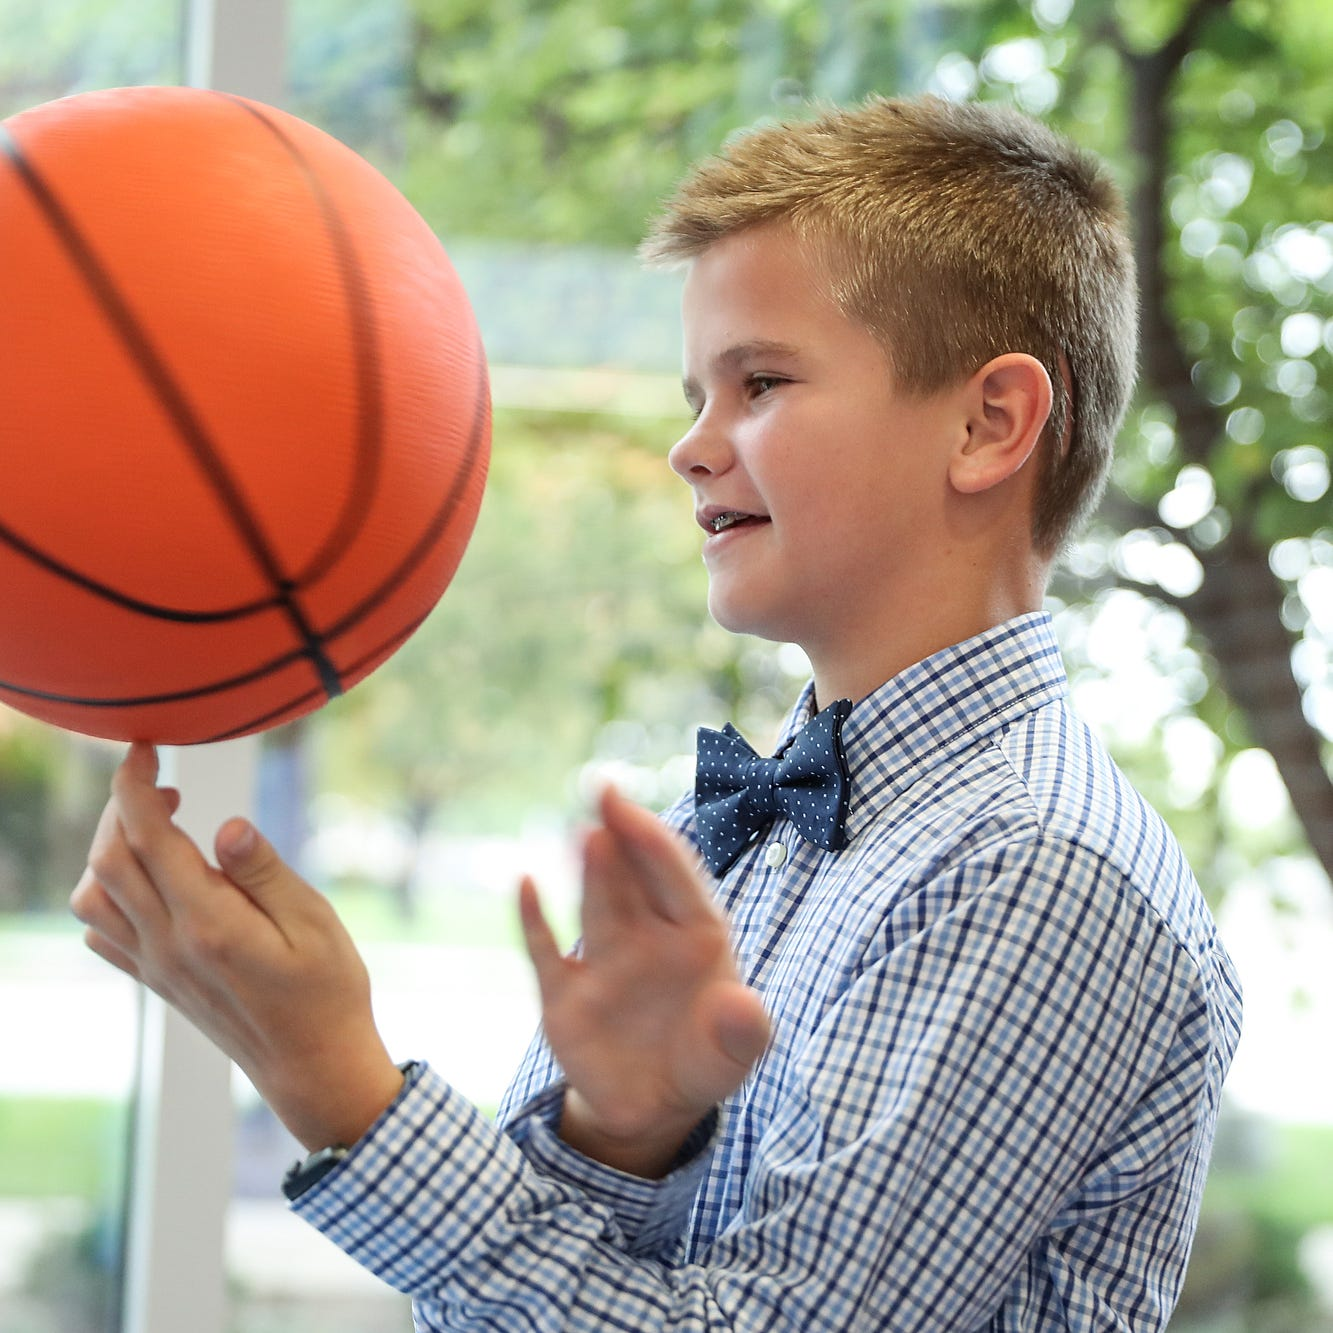 The 12-year-old basketball star who should've died, a Riley neurosurgeon who didn't give up